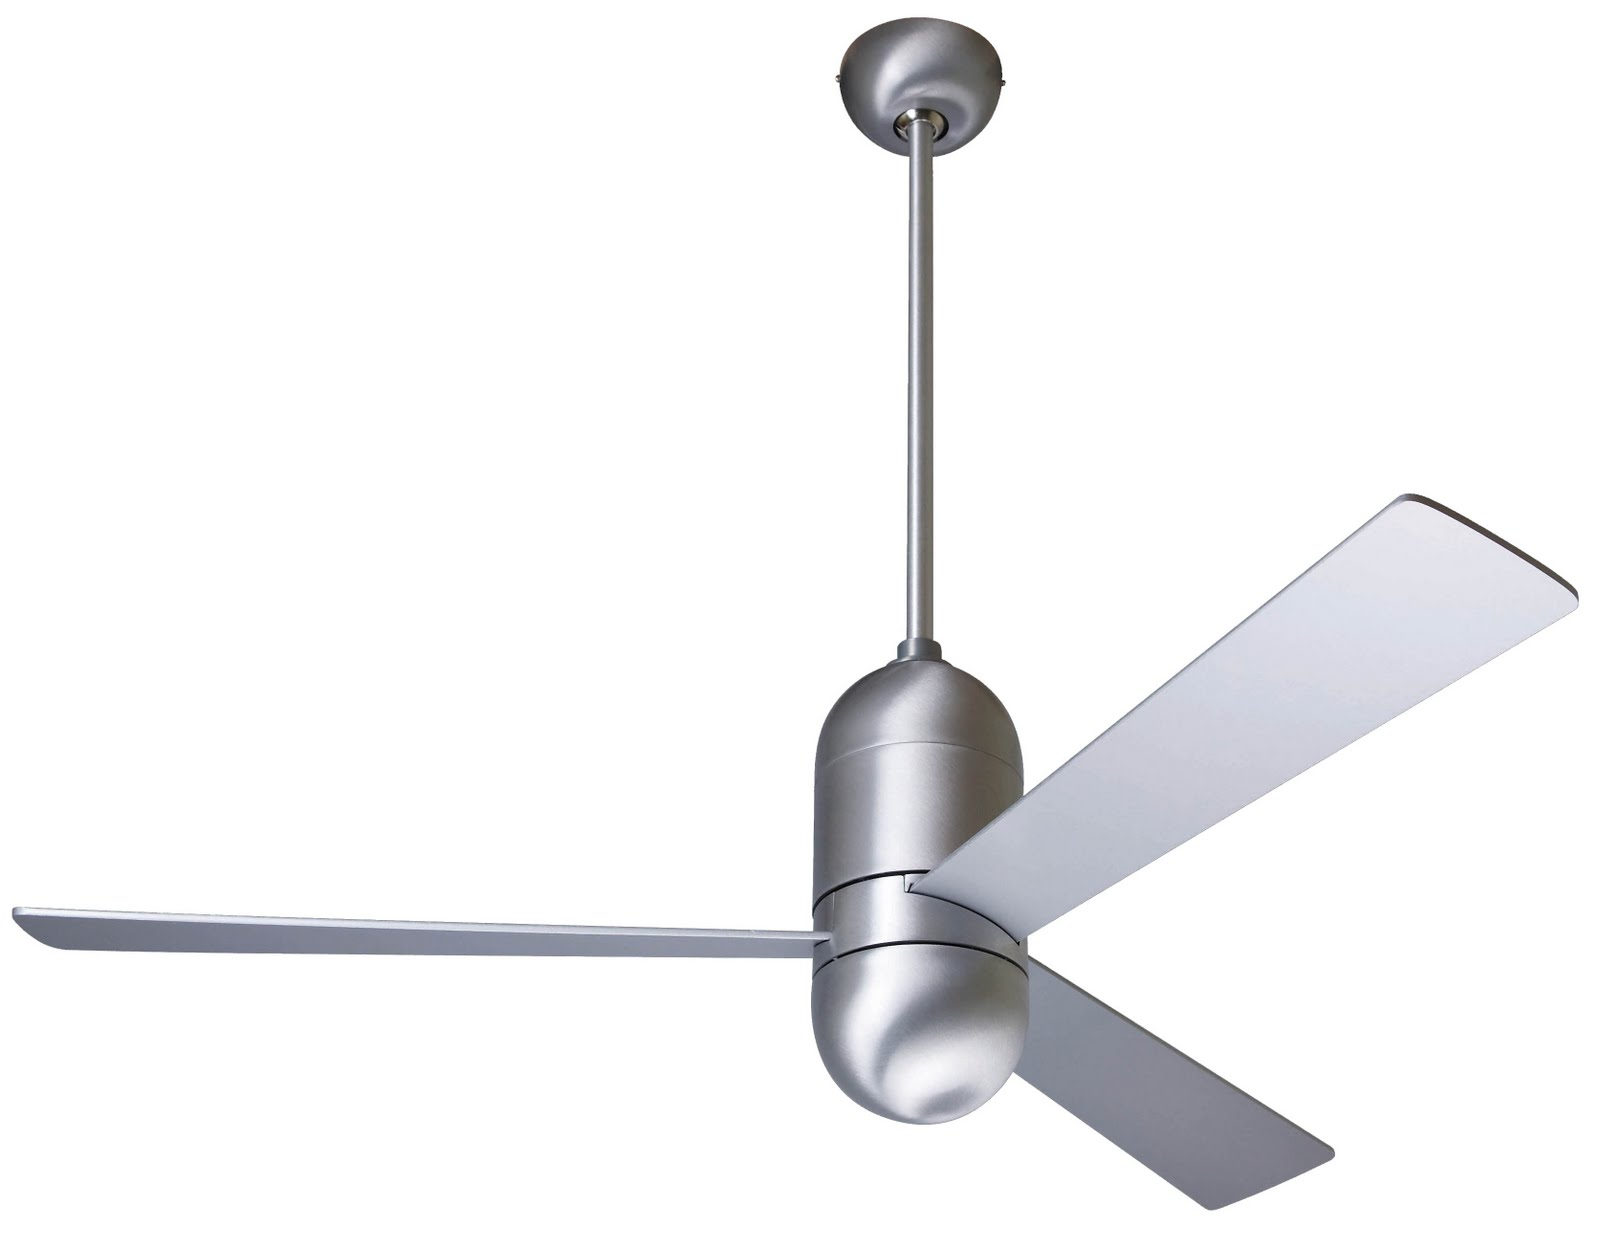 Ceiling Fans | modern design by moderndesign.org